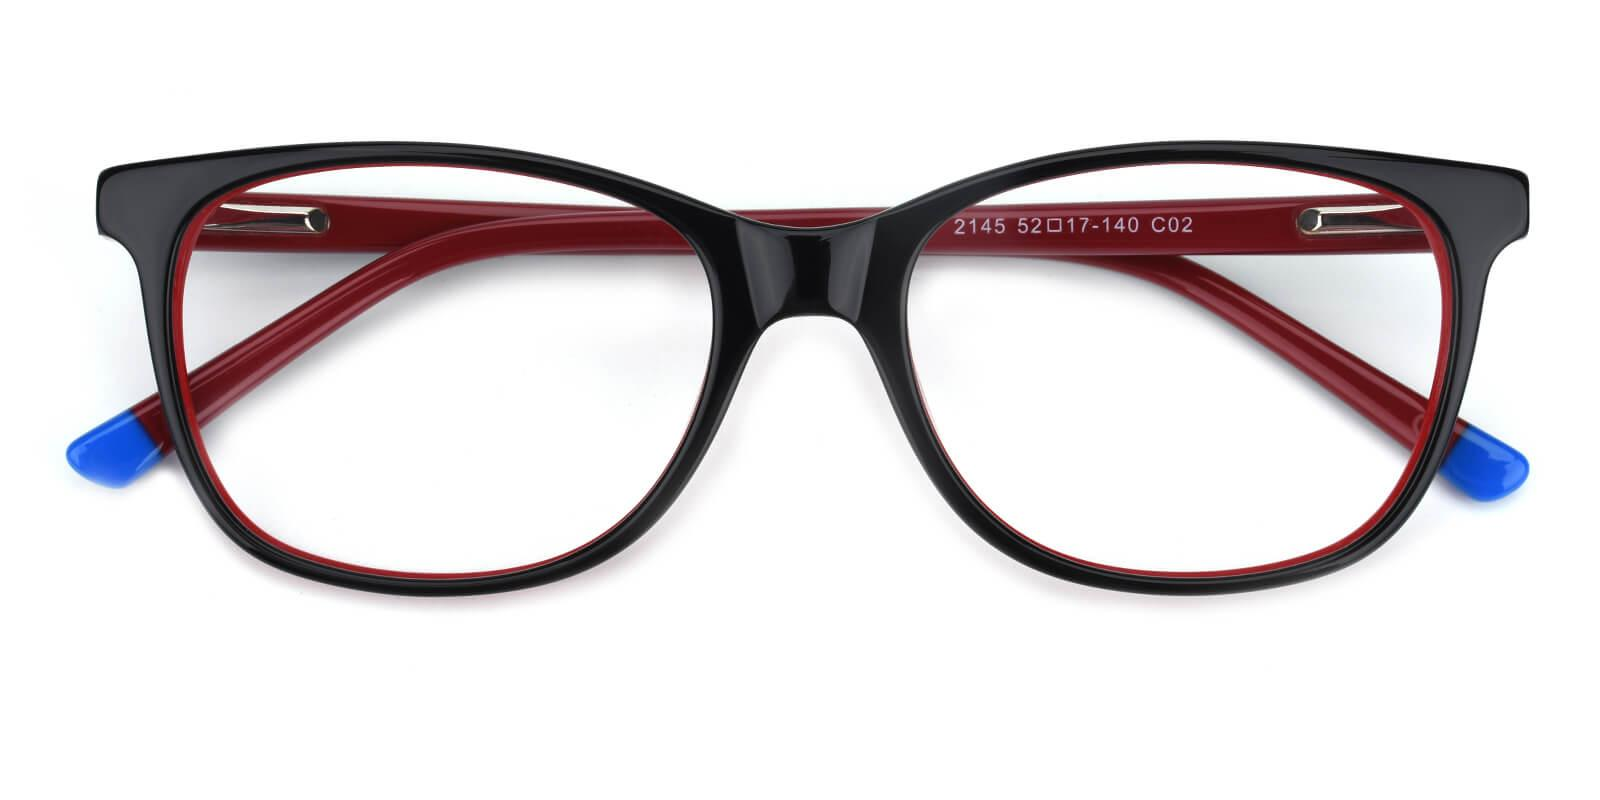 Sandwich-Red-Square-Acetate-Eyeglasses-detail